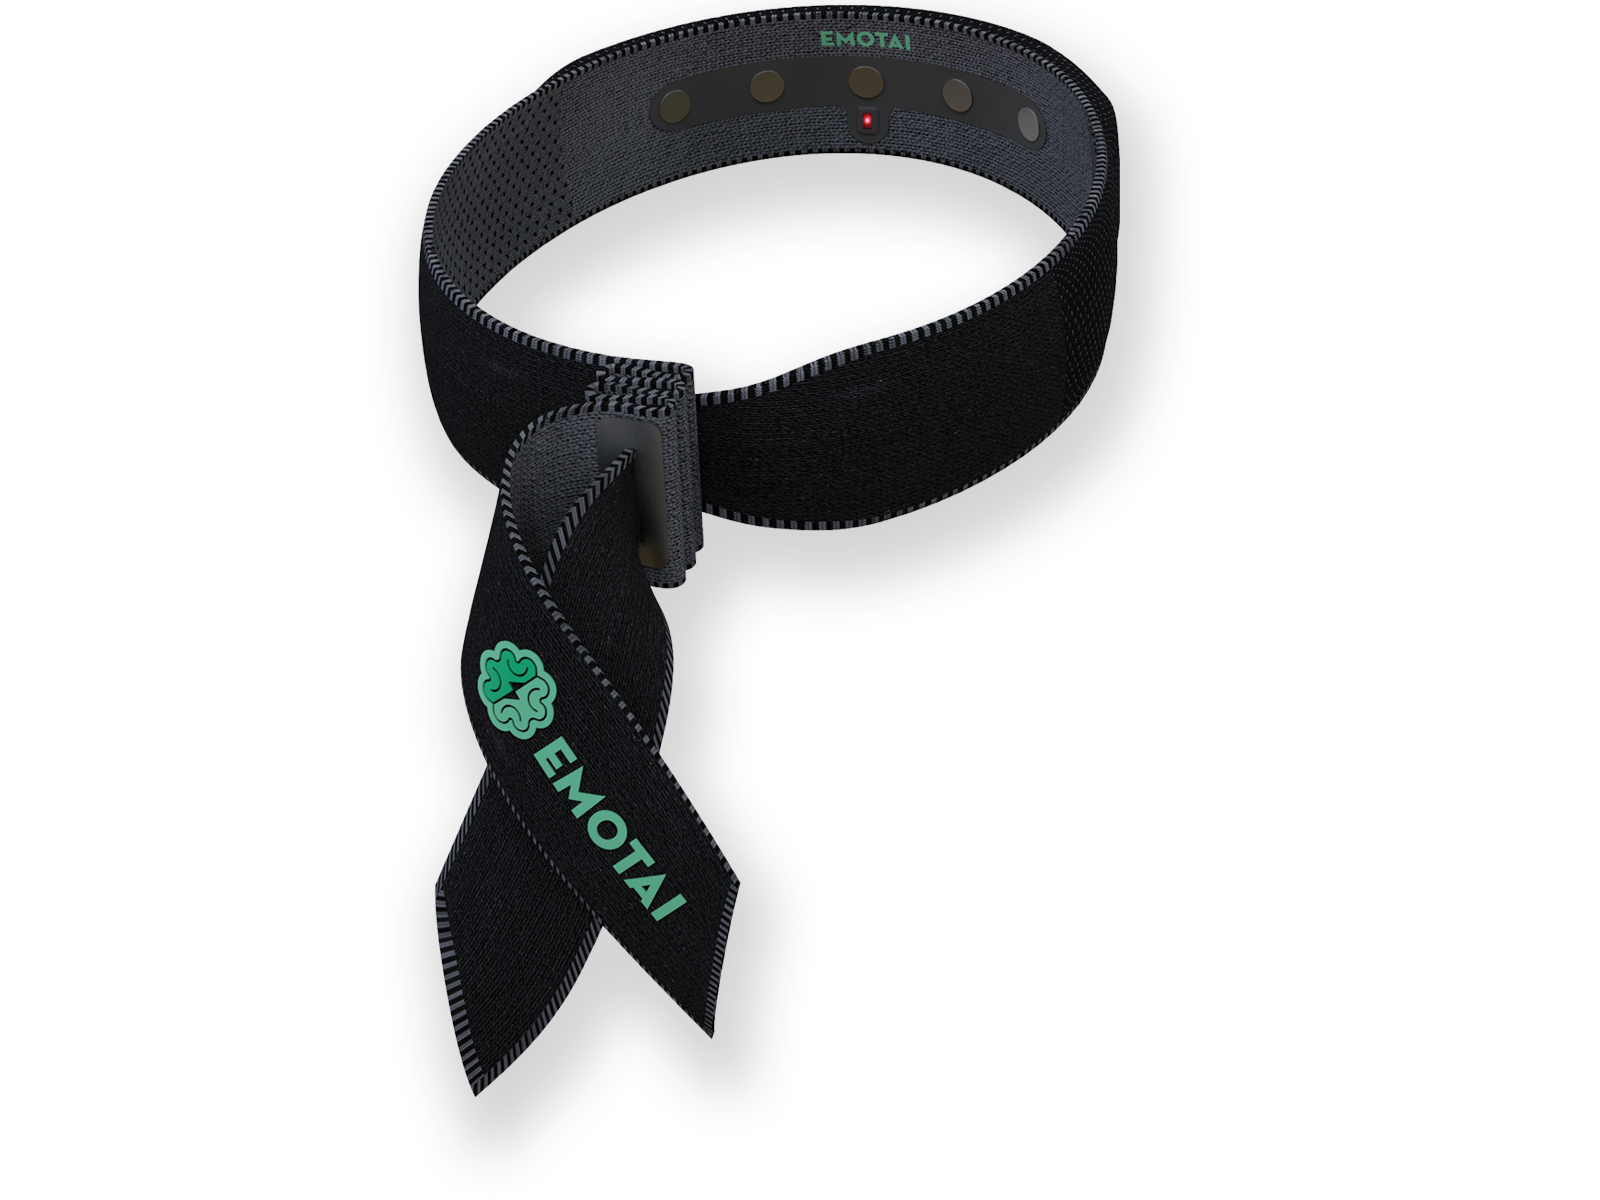 Our headband is made of comfortable textile and has all sensors are placed in the pre-frontal cortex or forehead.